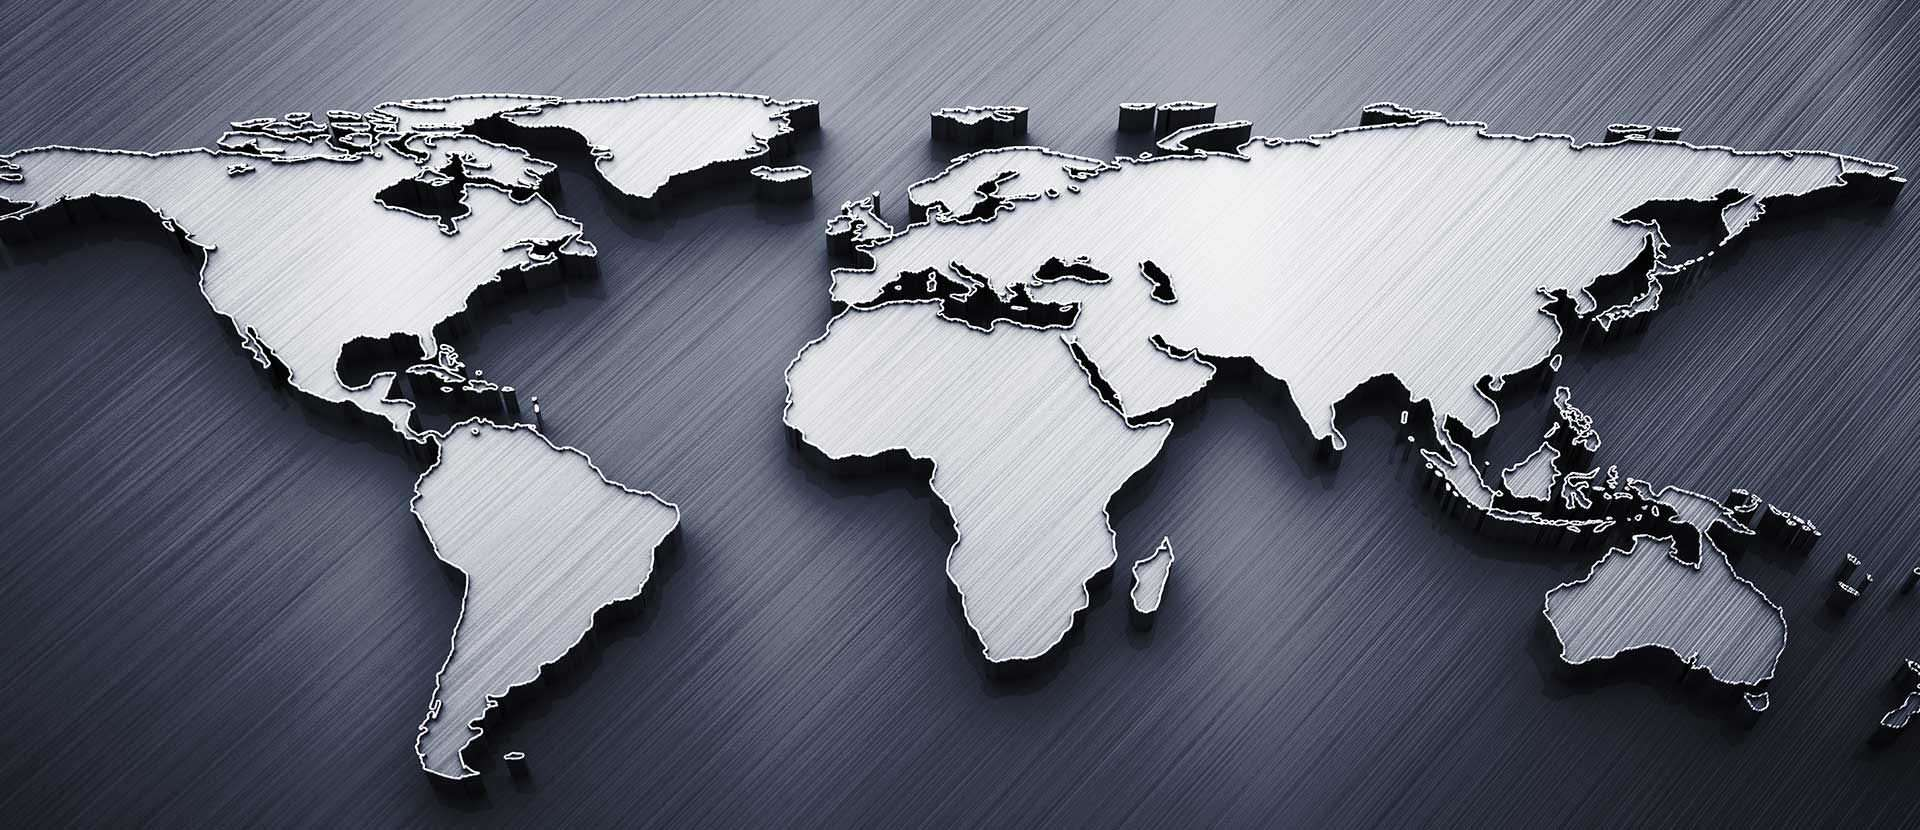 Belman expansion joints installed worldwide